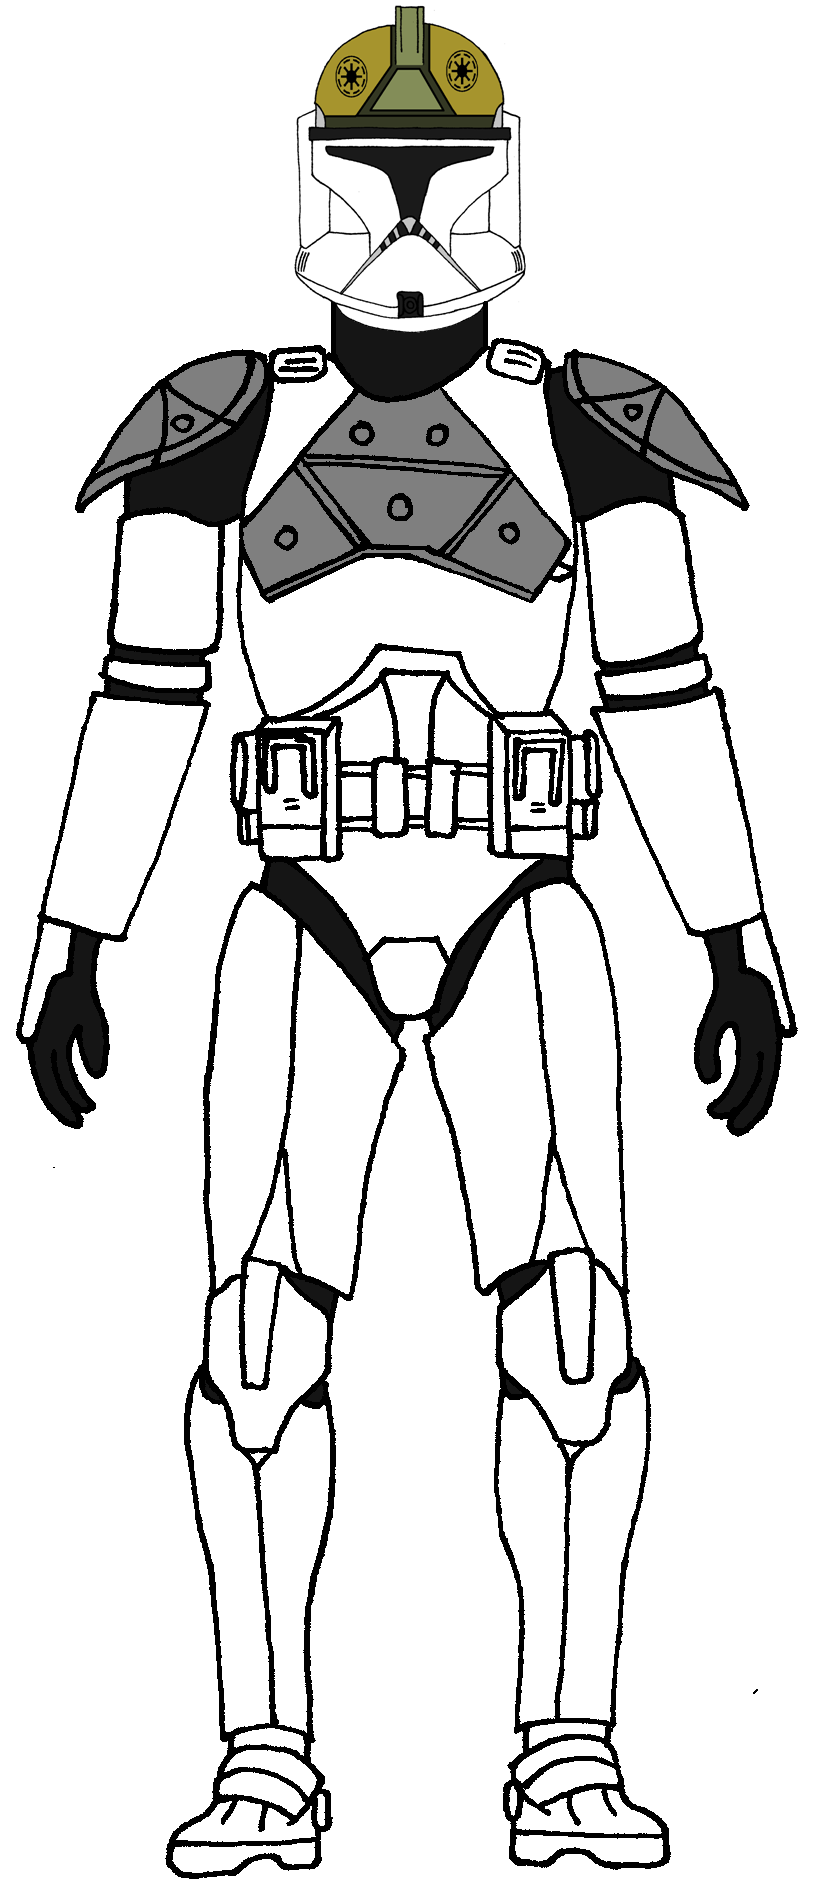 Clone Trooper Gunner 1 Star Wars Clone Wars Star Wars Pictures Star Wars Trooper